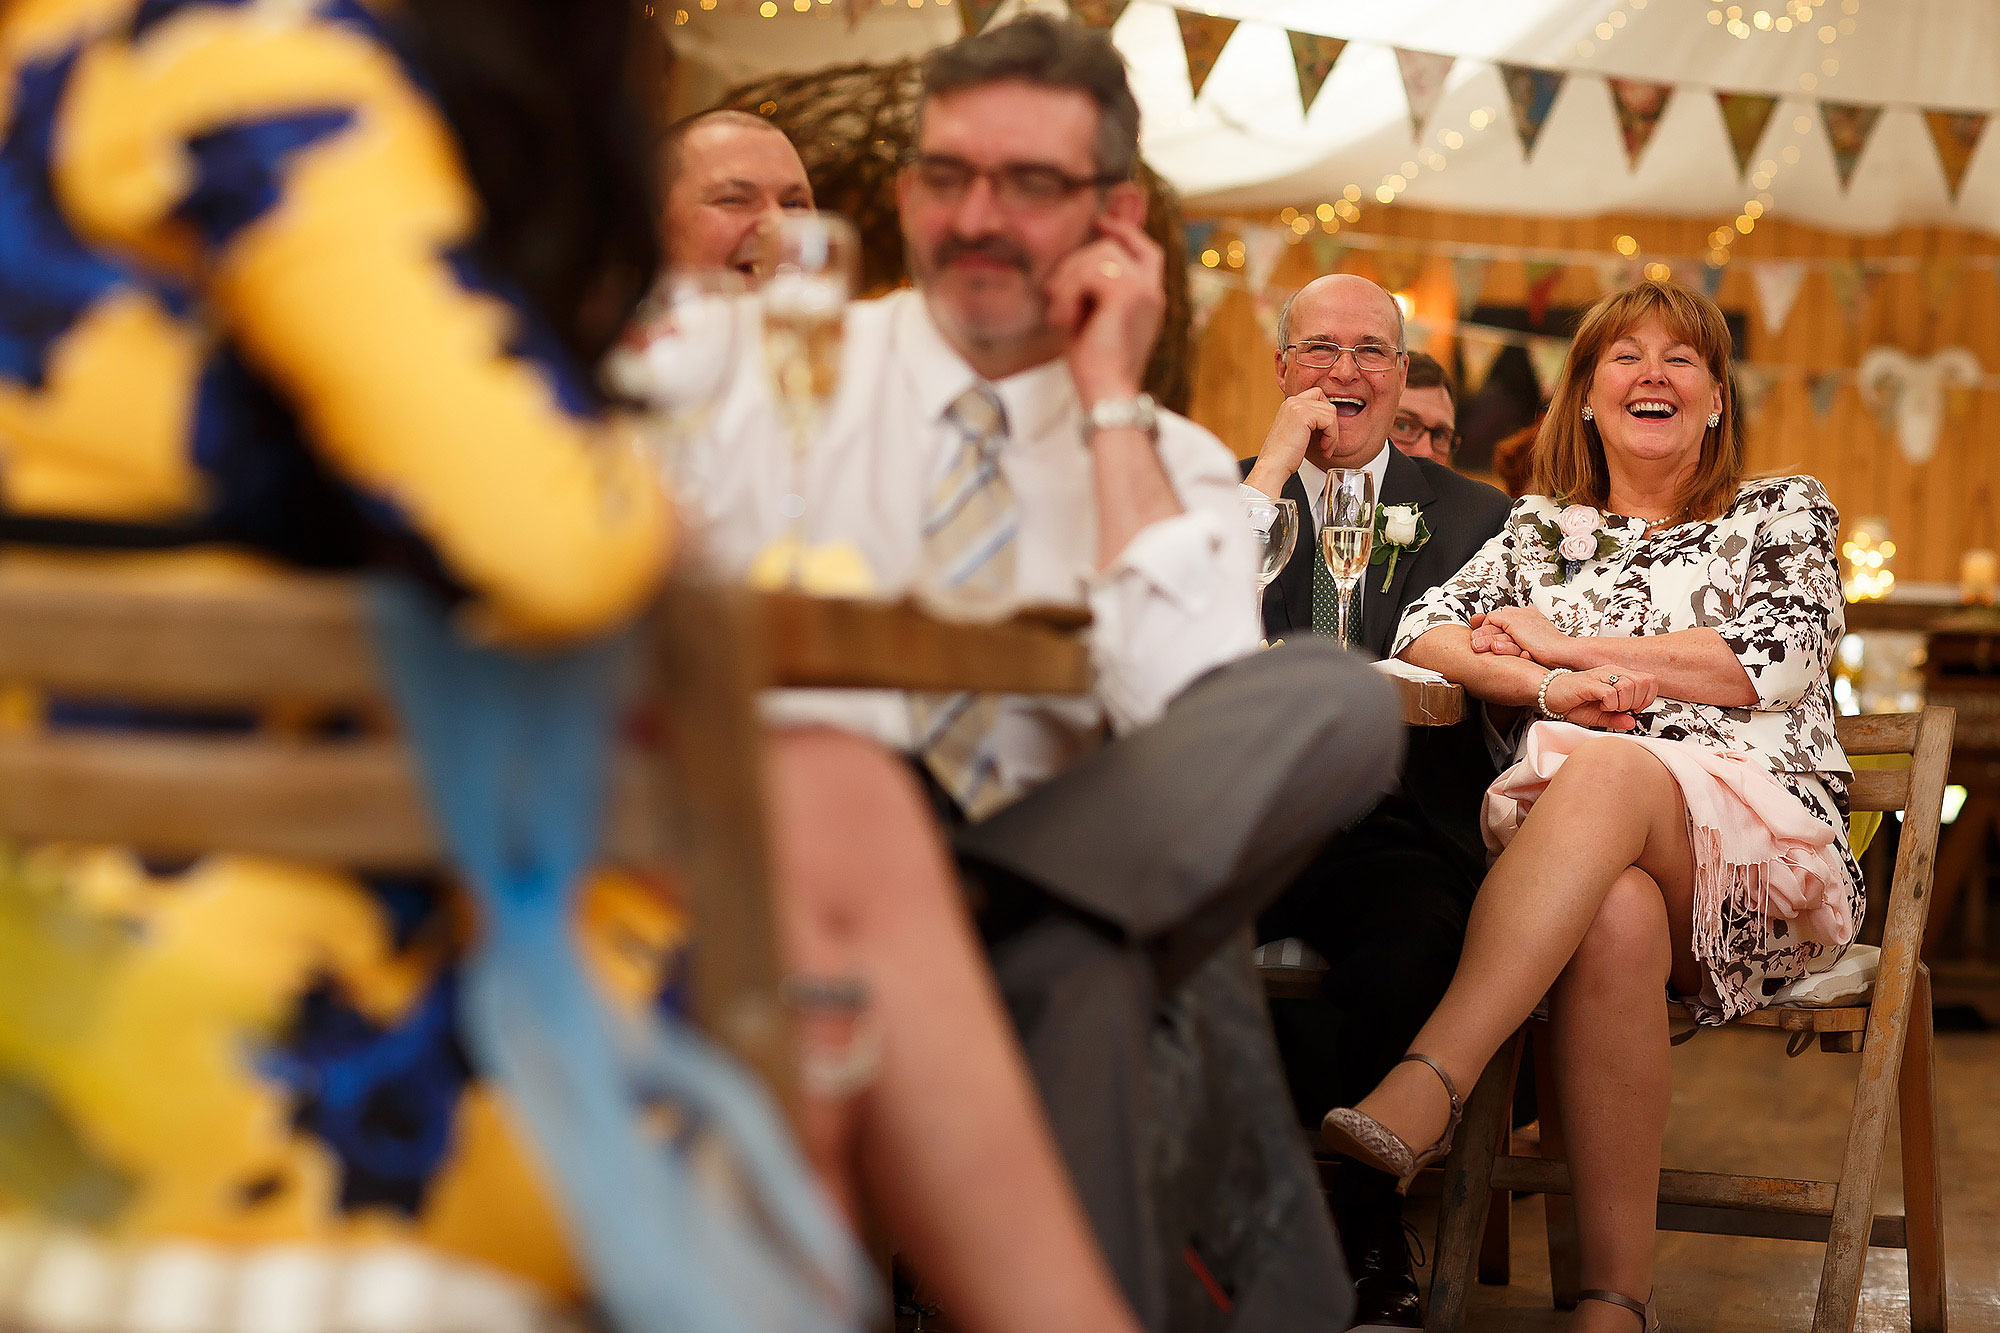 Wedding guests laughing during the wedding speeches | Summer wedding at Wellbeing Farm - Toni Darcy Photography